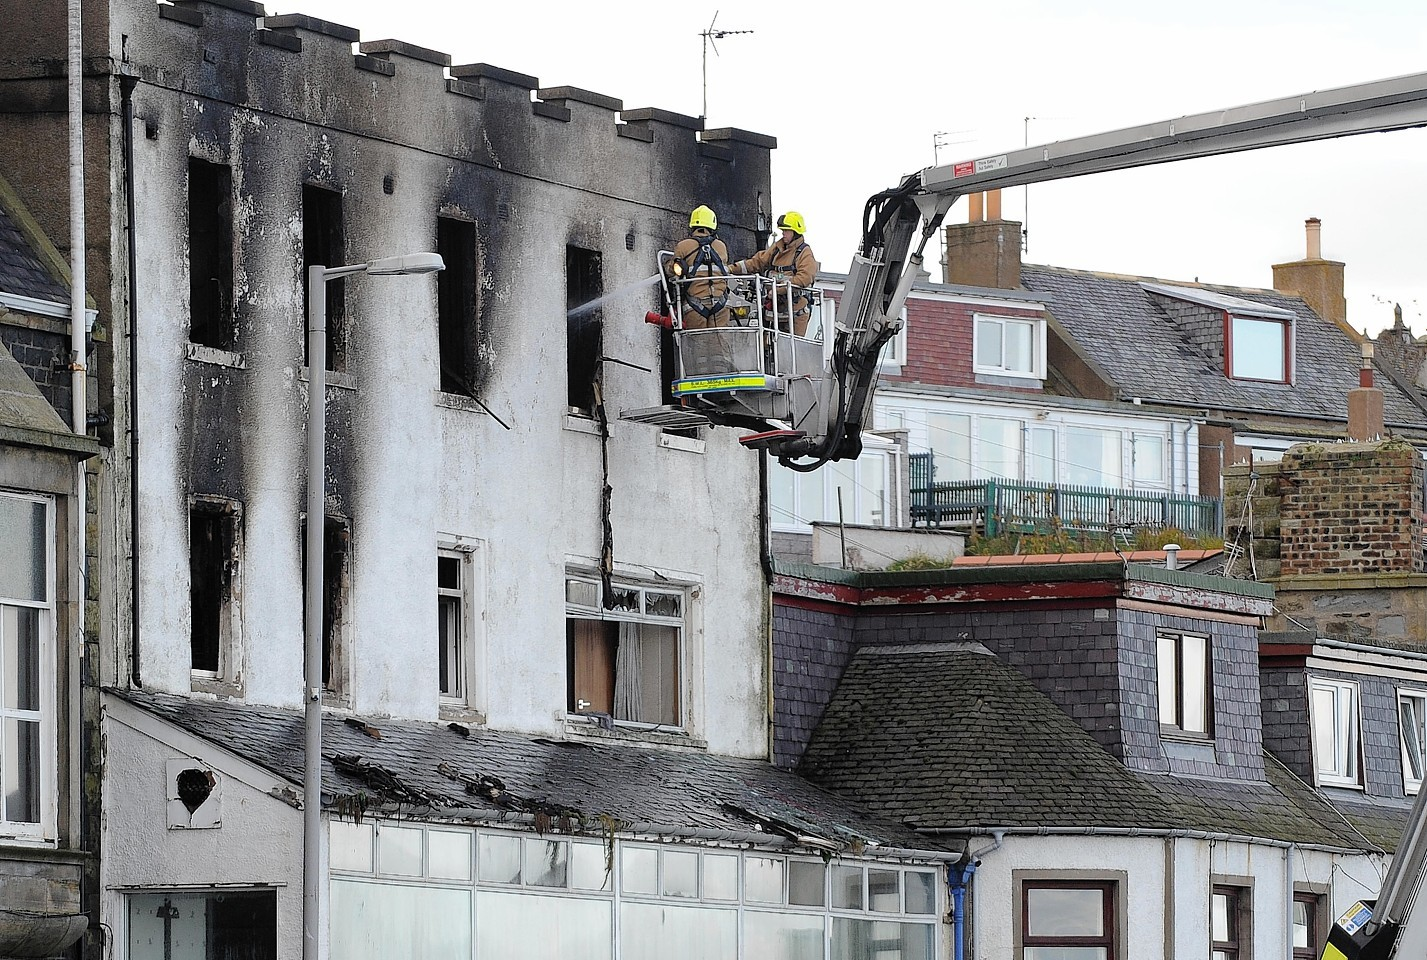 Fire crews work to make the building safe